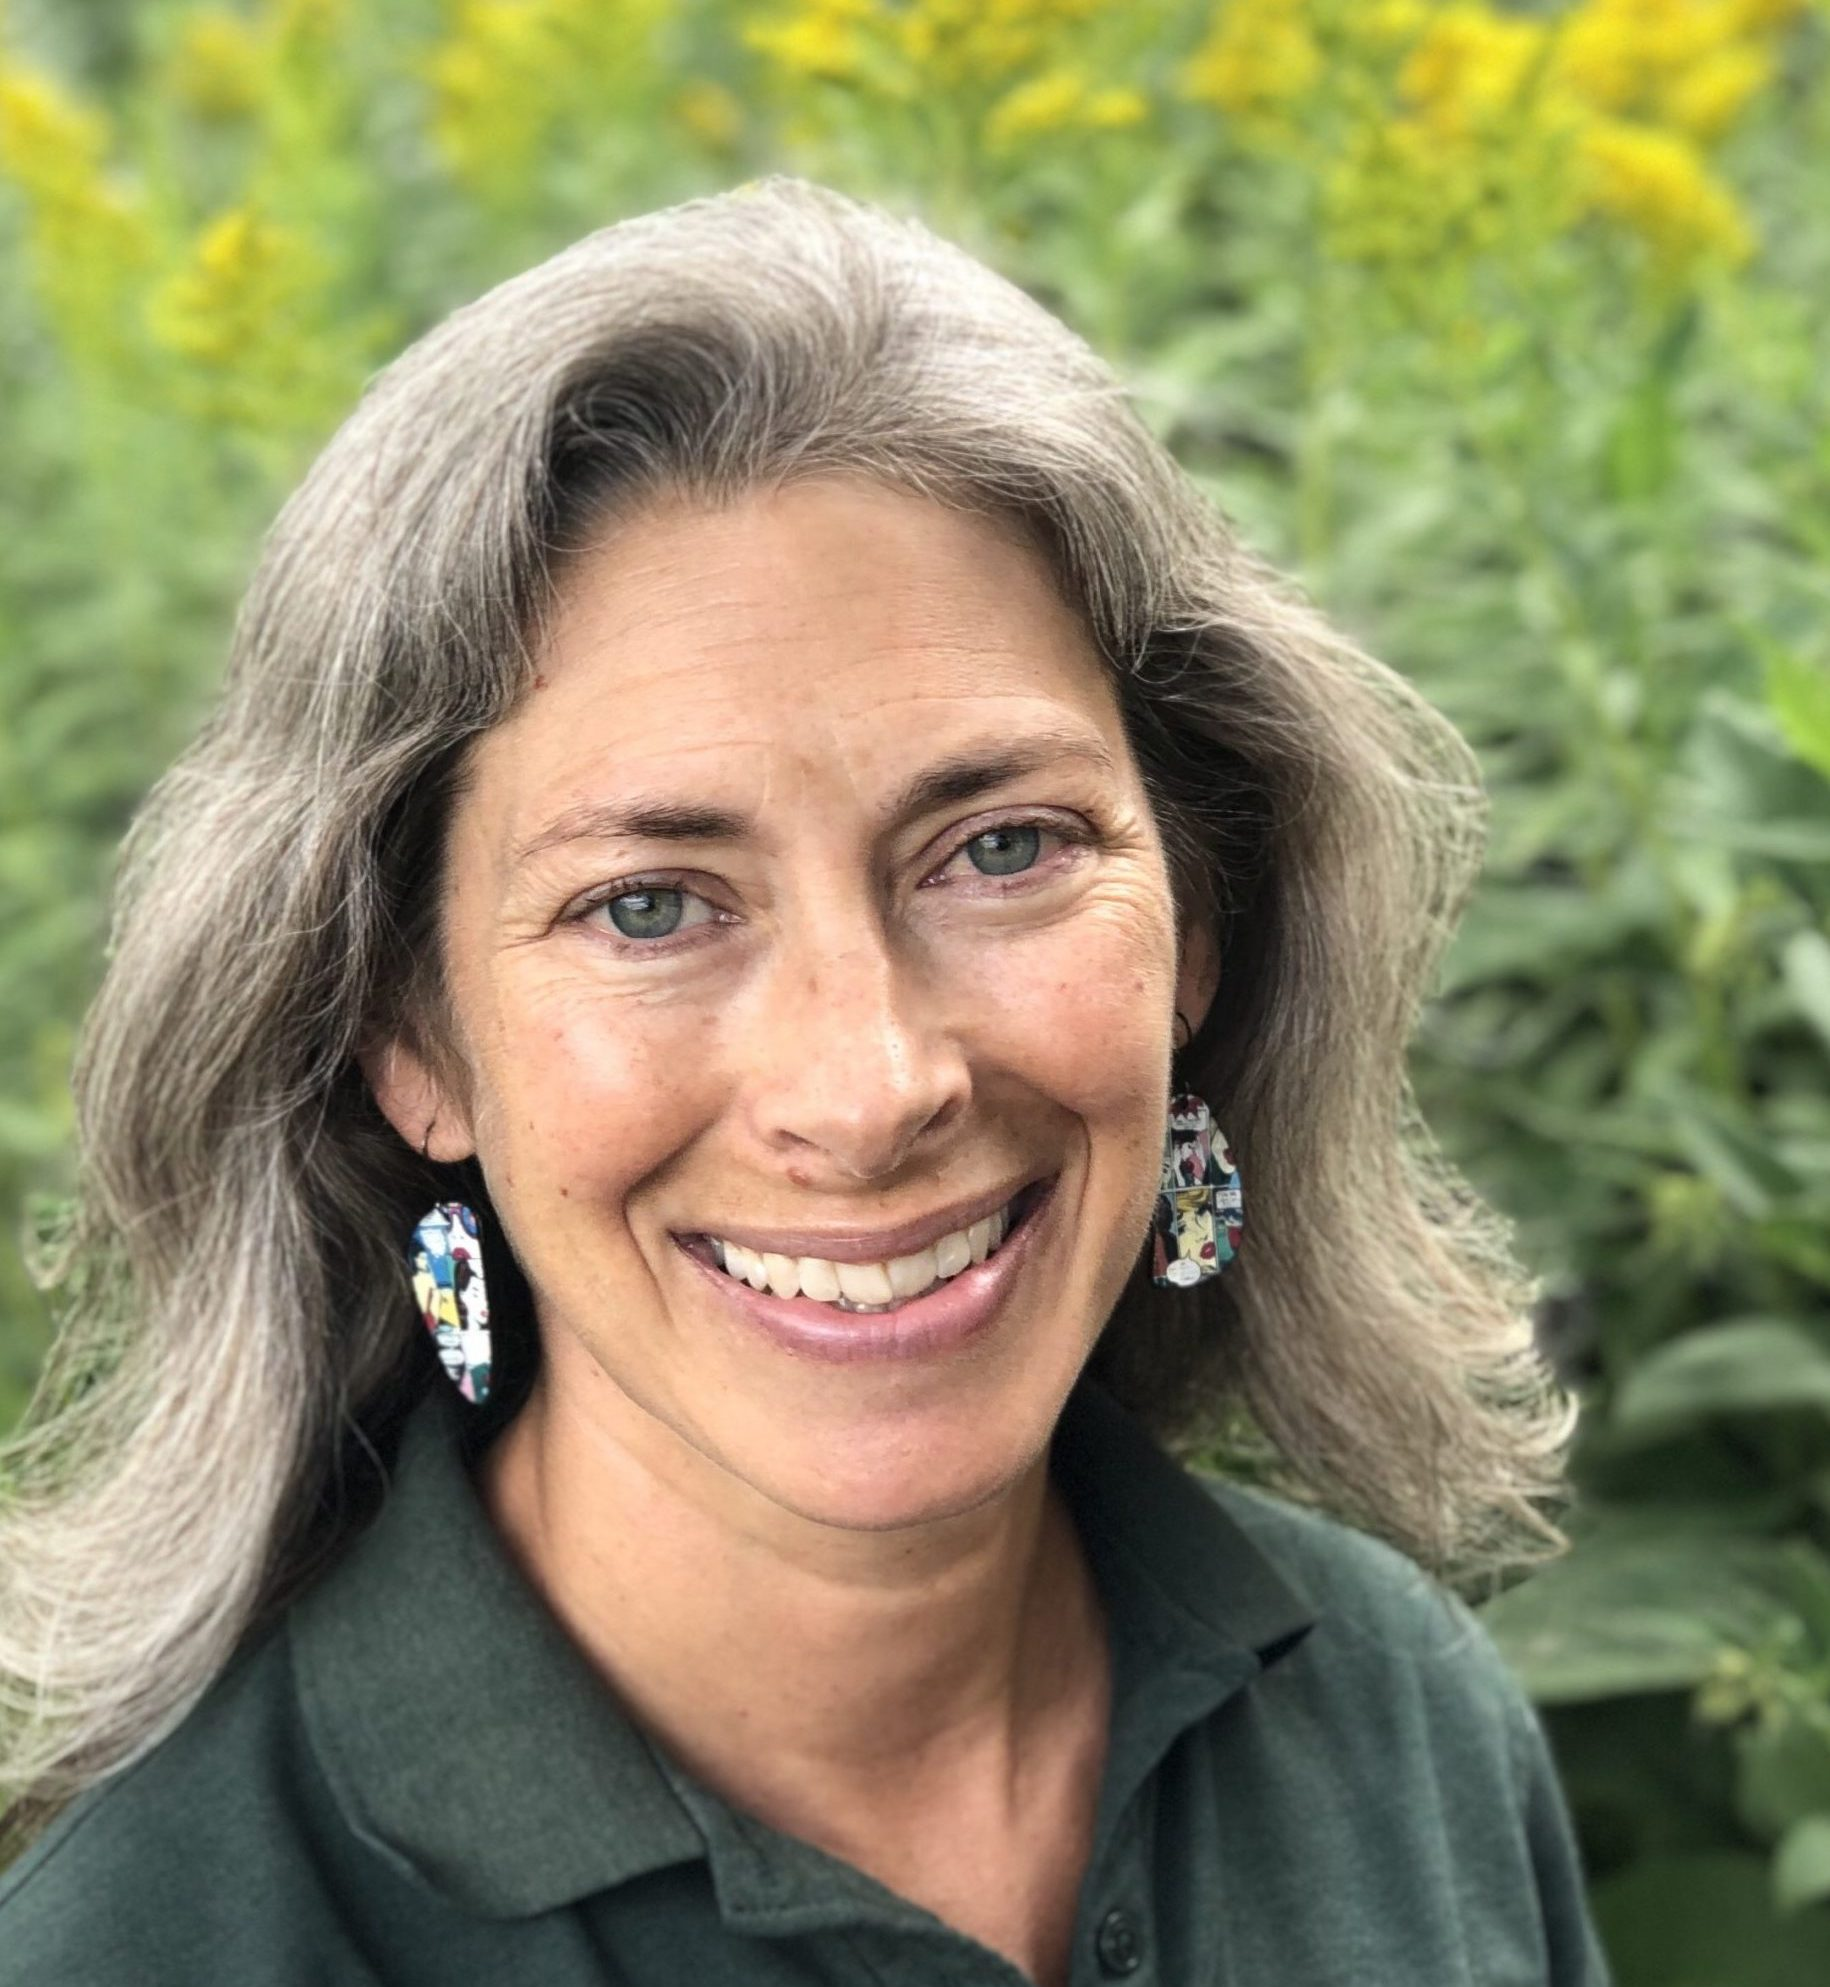 Photo of Dr. Kristin Haskins, Executive Director, The Arboretum at Flagstaff